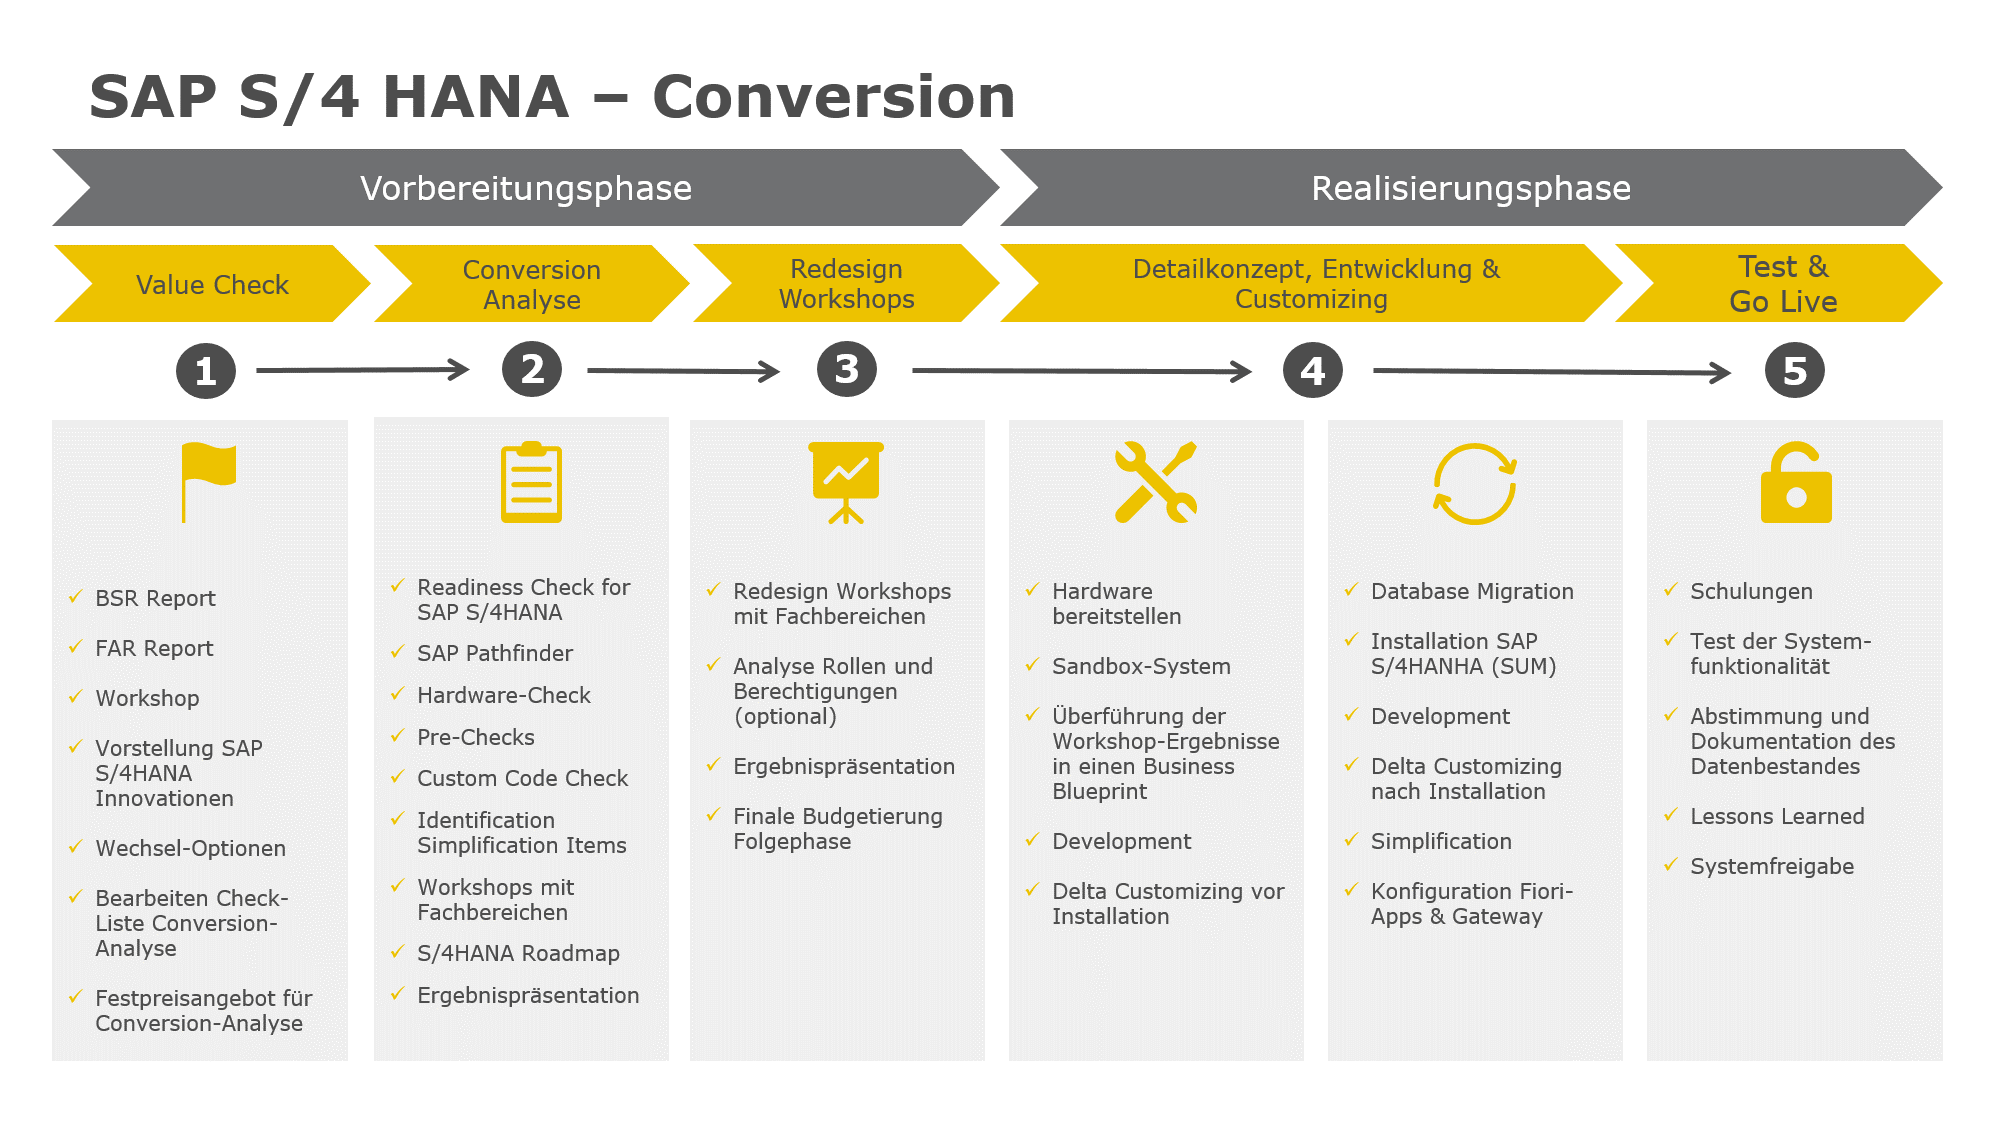 Your Path to S4HANA - SAP-Lösungen